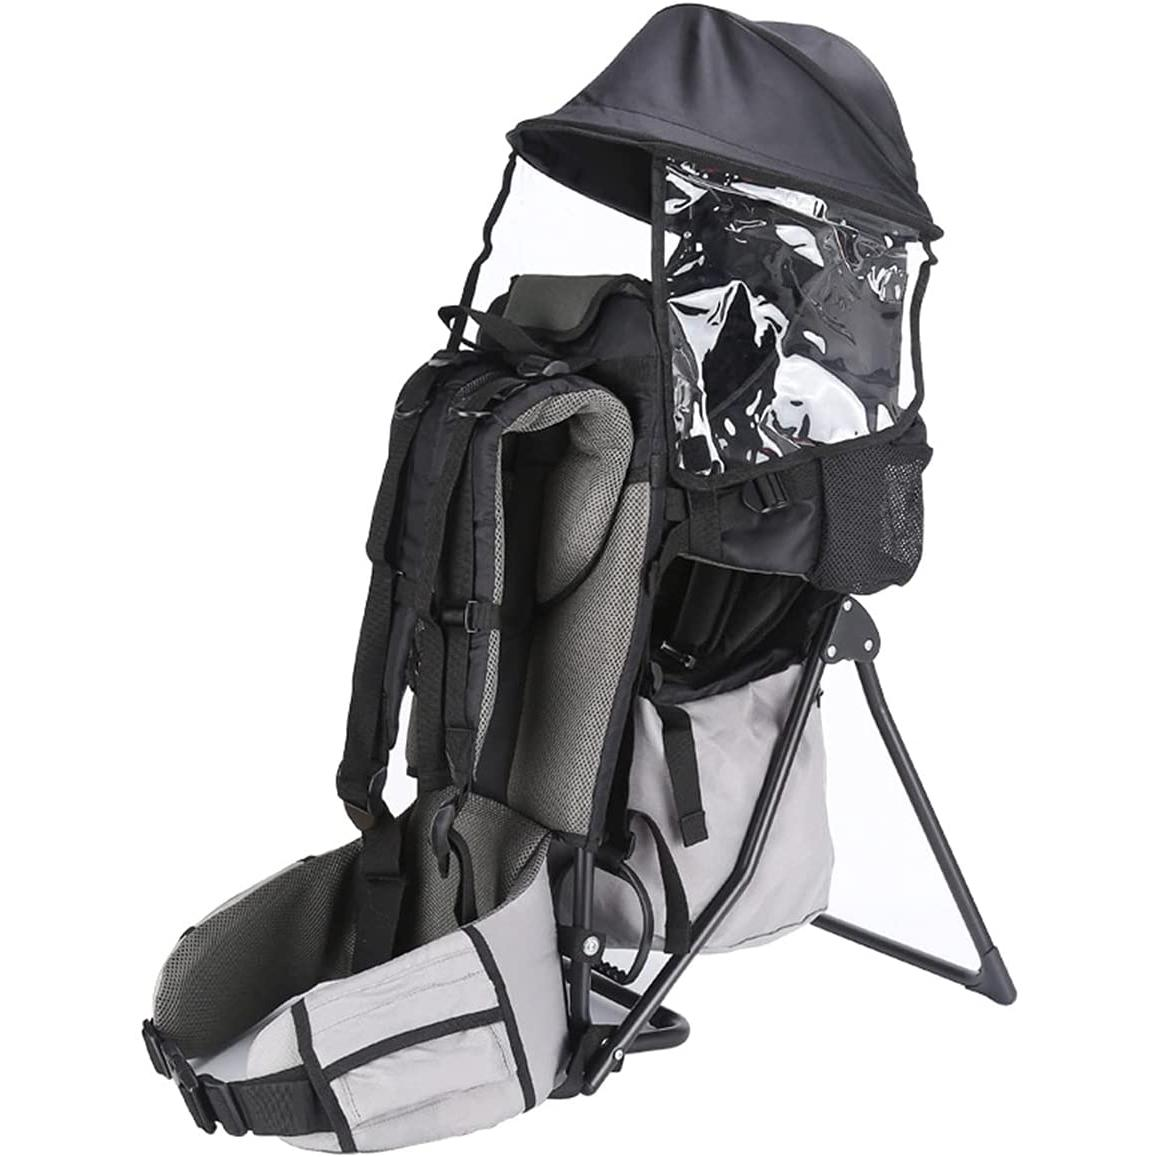 Baby Toddler Hiking Backpack Carrier Camping Child Carriers with Rain Cover Stand Child Kid Sun Shade Visor Shield for Children Between 6 Months-4 Years Old